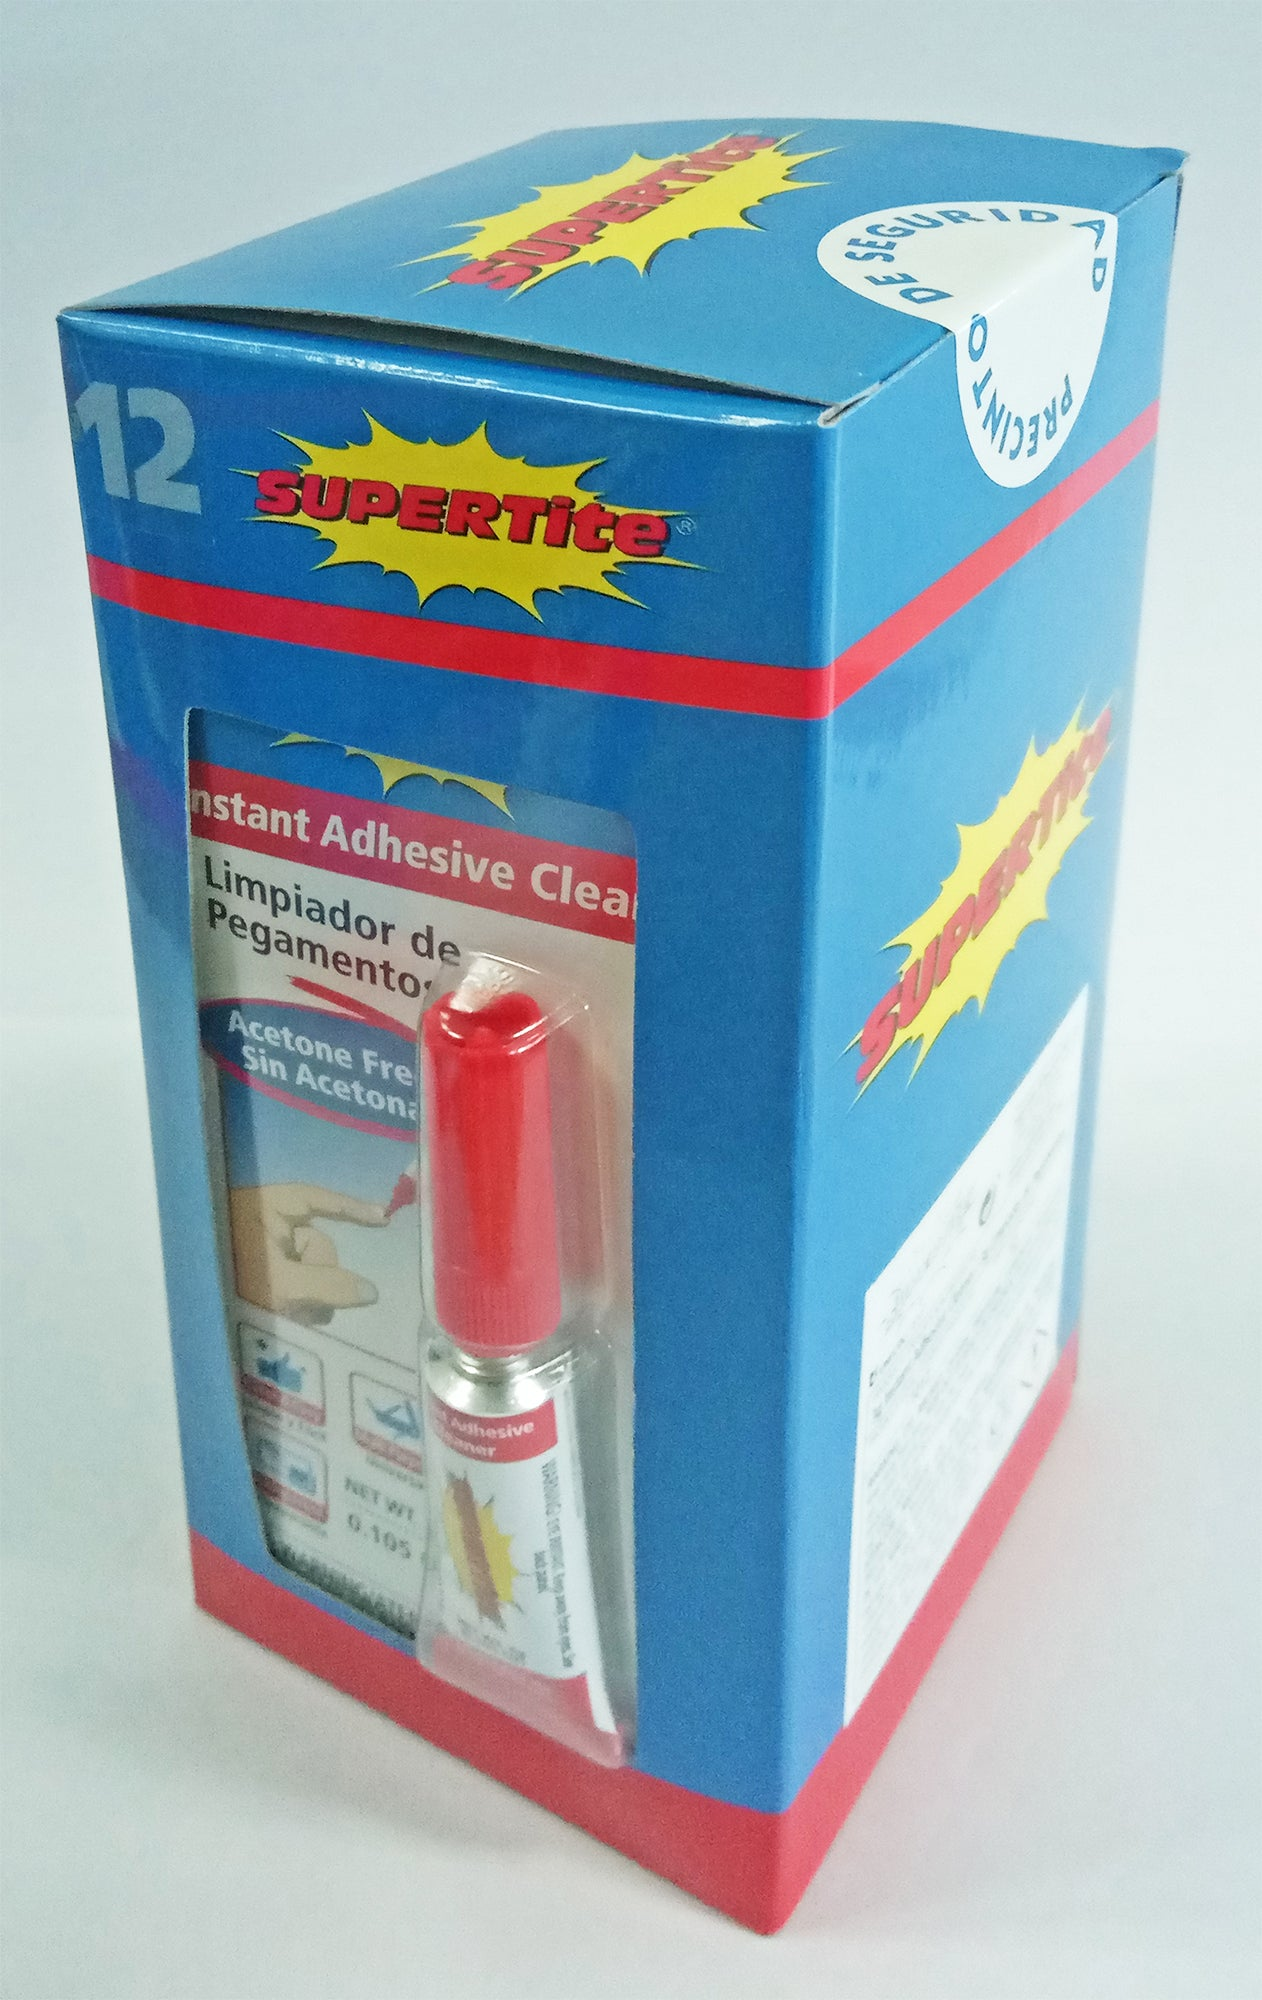 Ref-1012 Supertite Instant Adhesive Cleaner- 3g (0.105oz) Tube